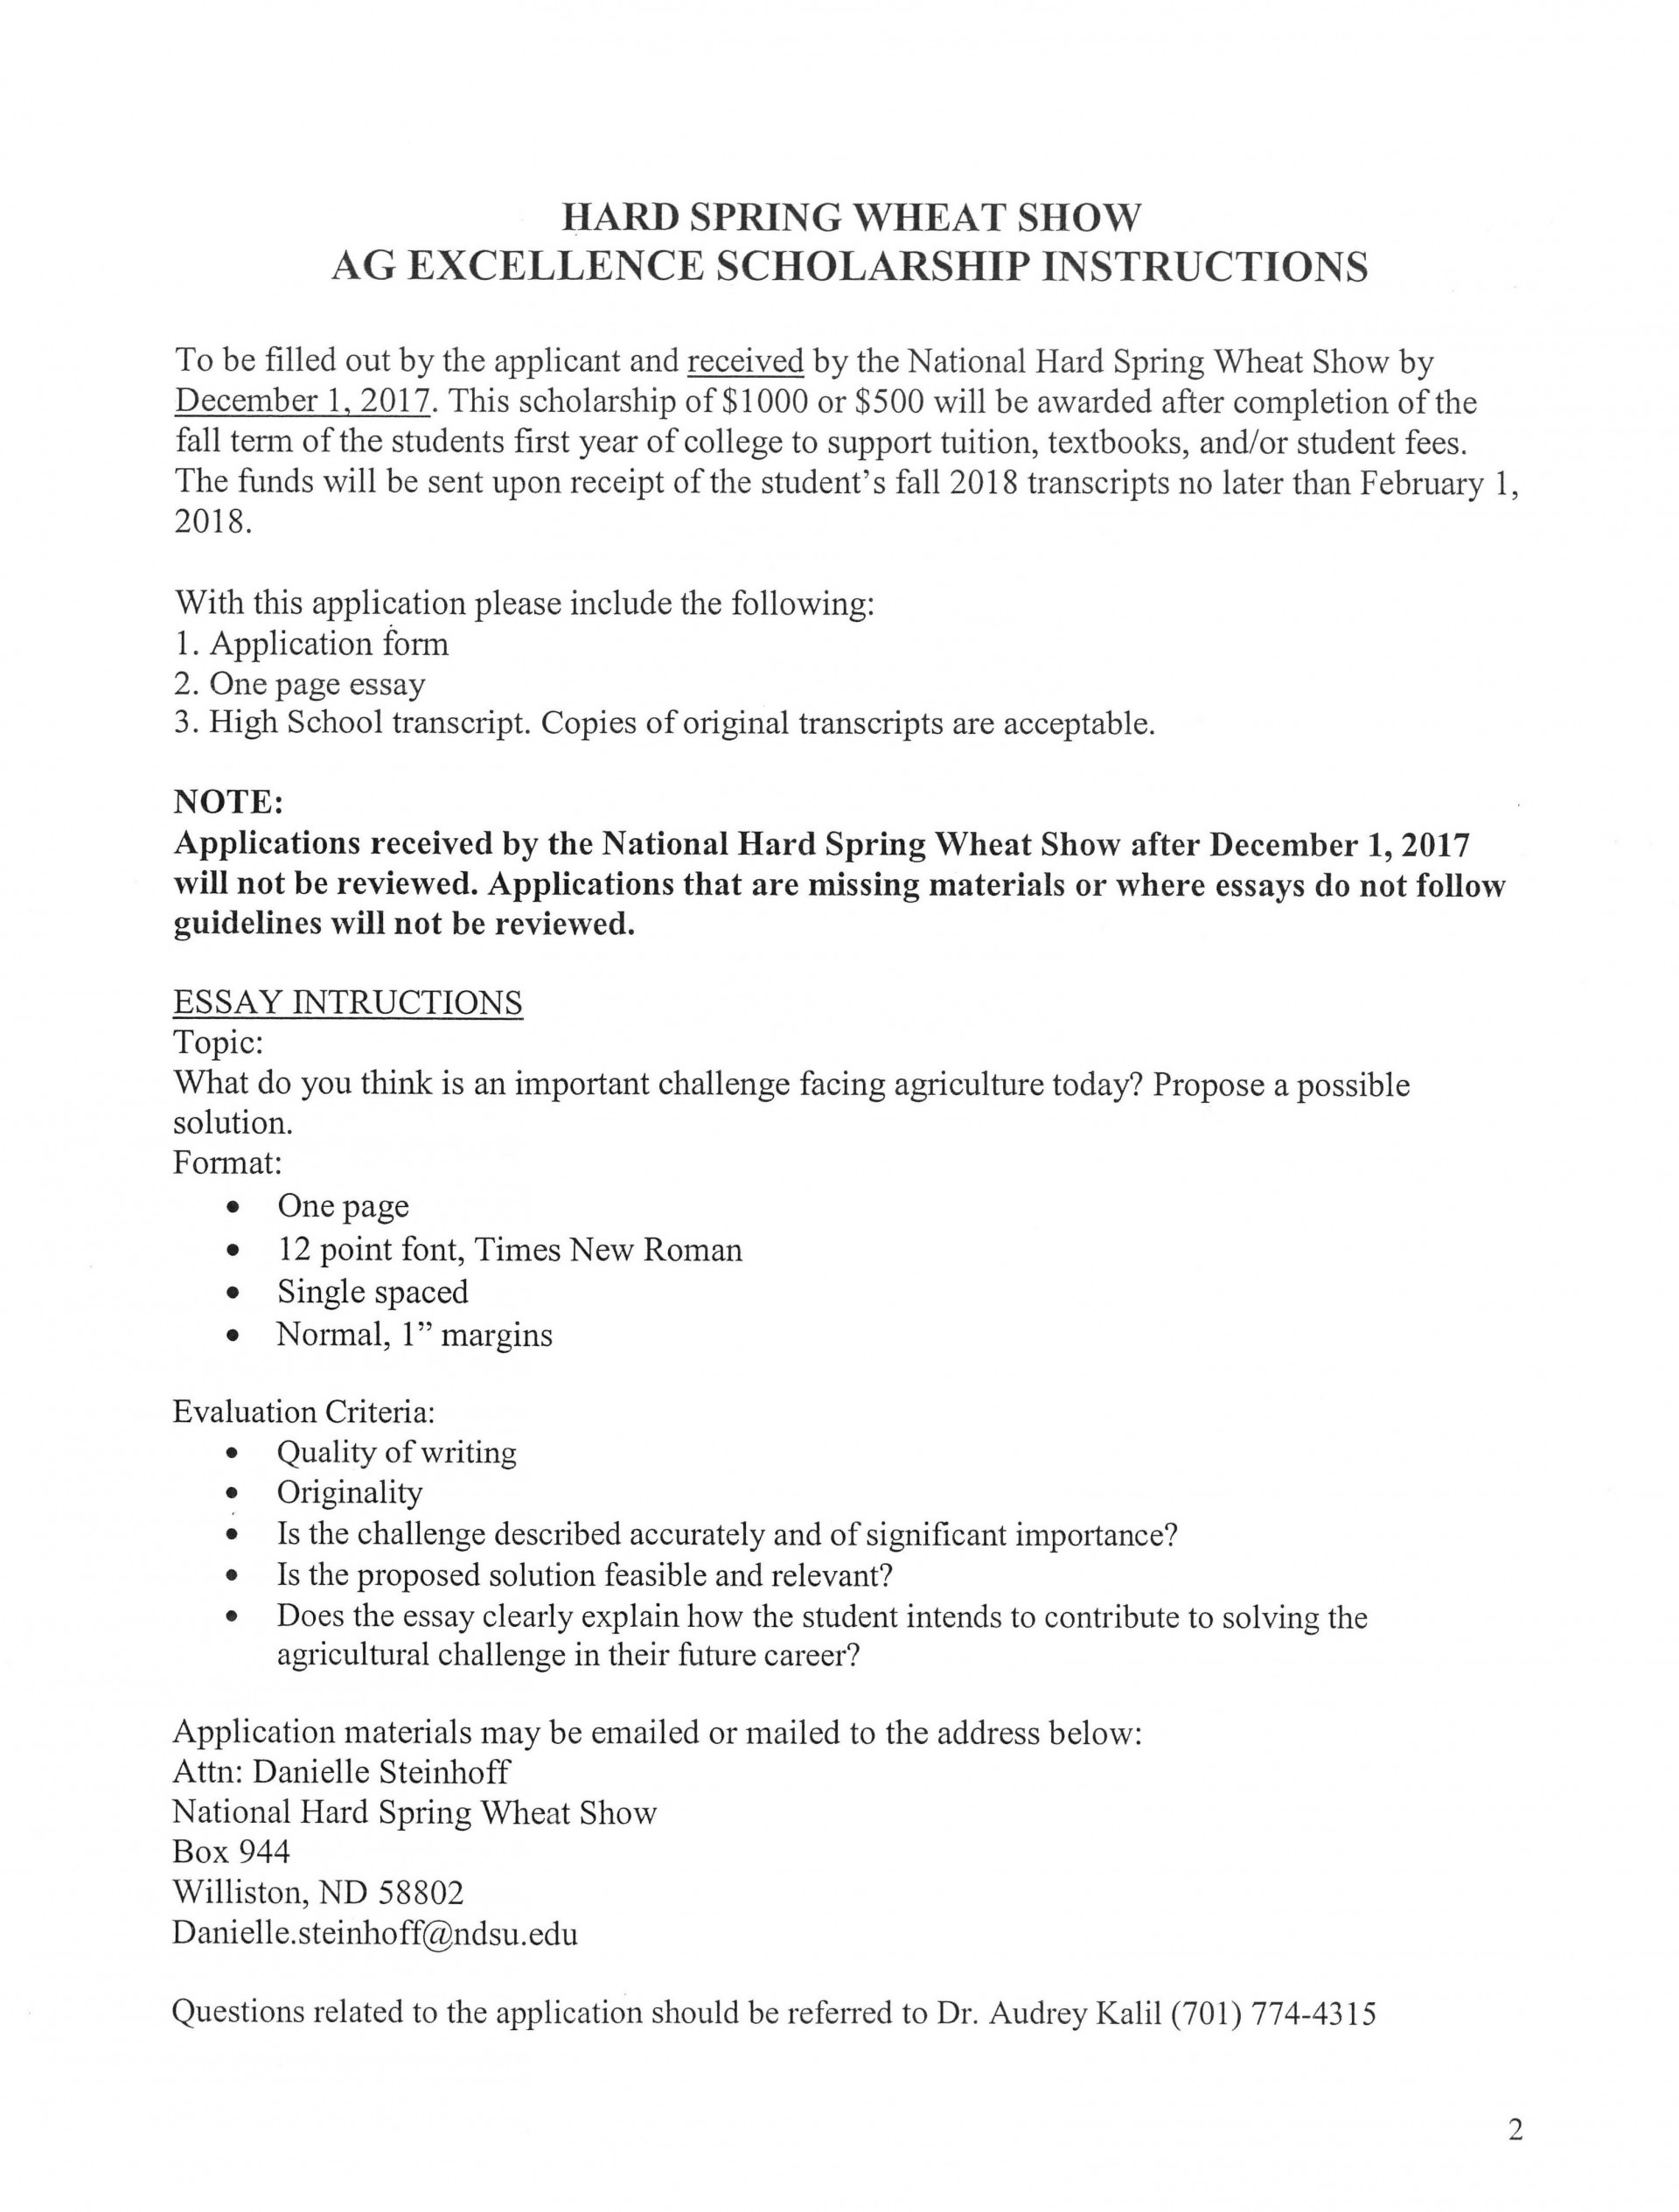 025 Scholarships With Essays Page 2 Essay Singular Without Writing For High School Juniors Class Of 2020 No 2019 1920